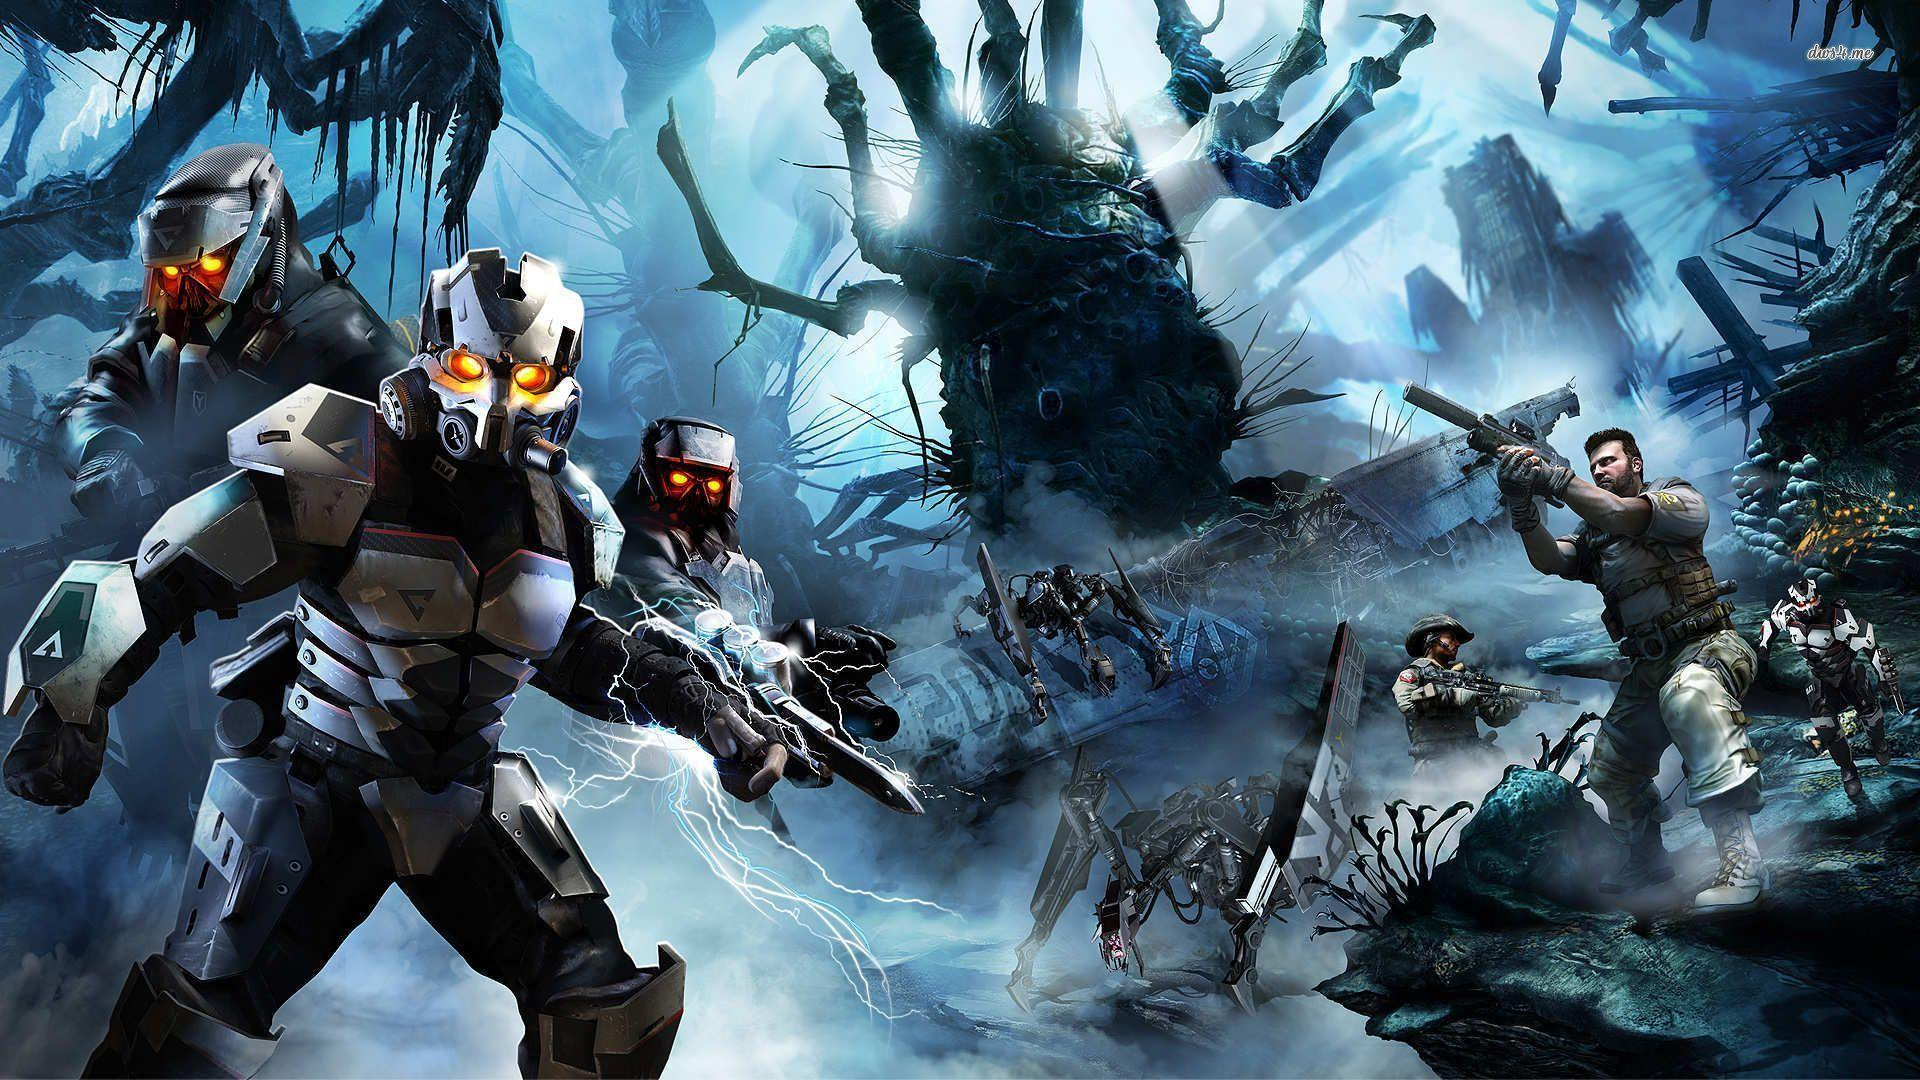 Killzone Shadow Fall Wallpaper Killzone 3 Wallpapers Wallpaper Cave